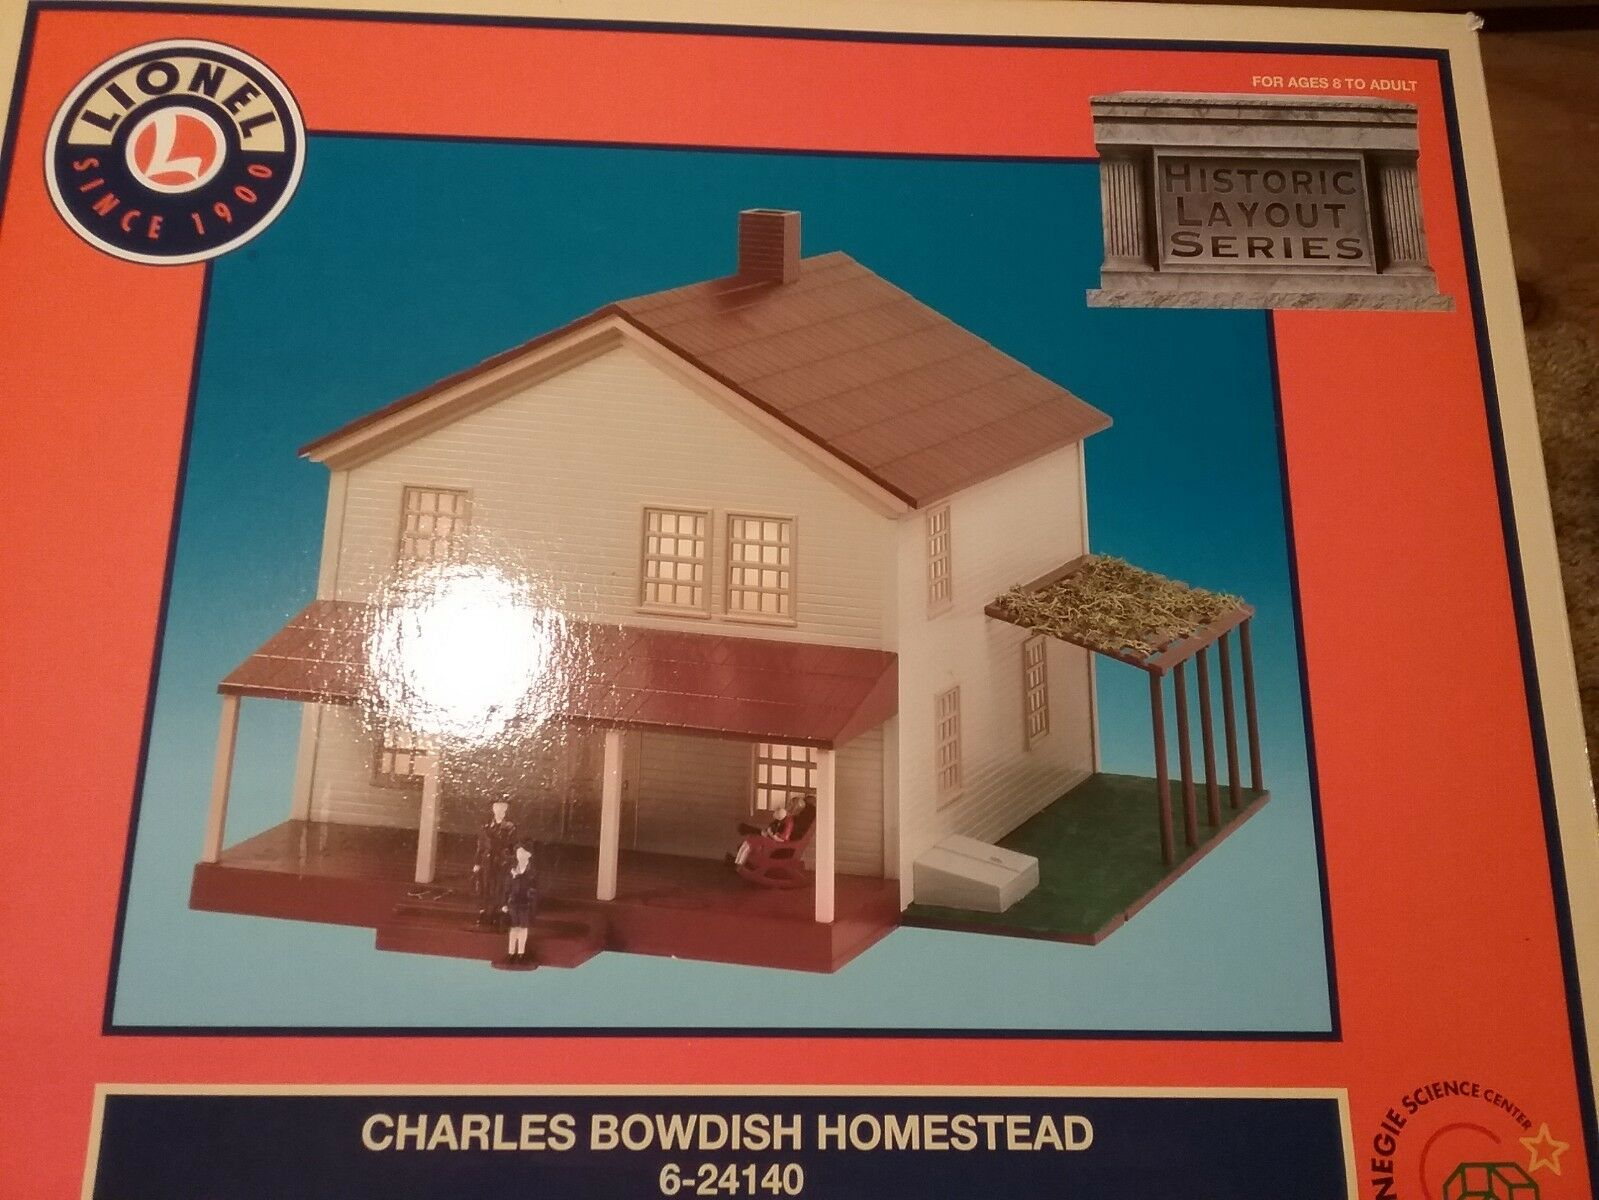 LIONEL 6-24140 CHARLES BOWDISH HOMESTEAD  HISTORIC LAYOUT SERIES    LN IN OB